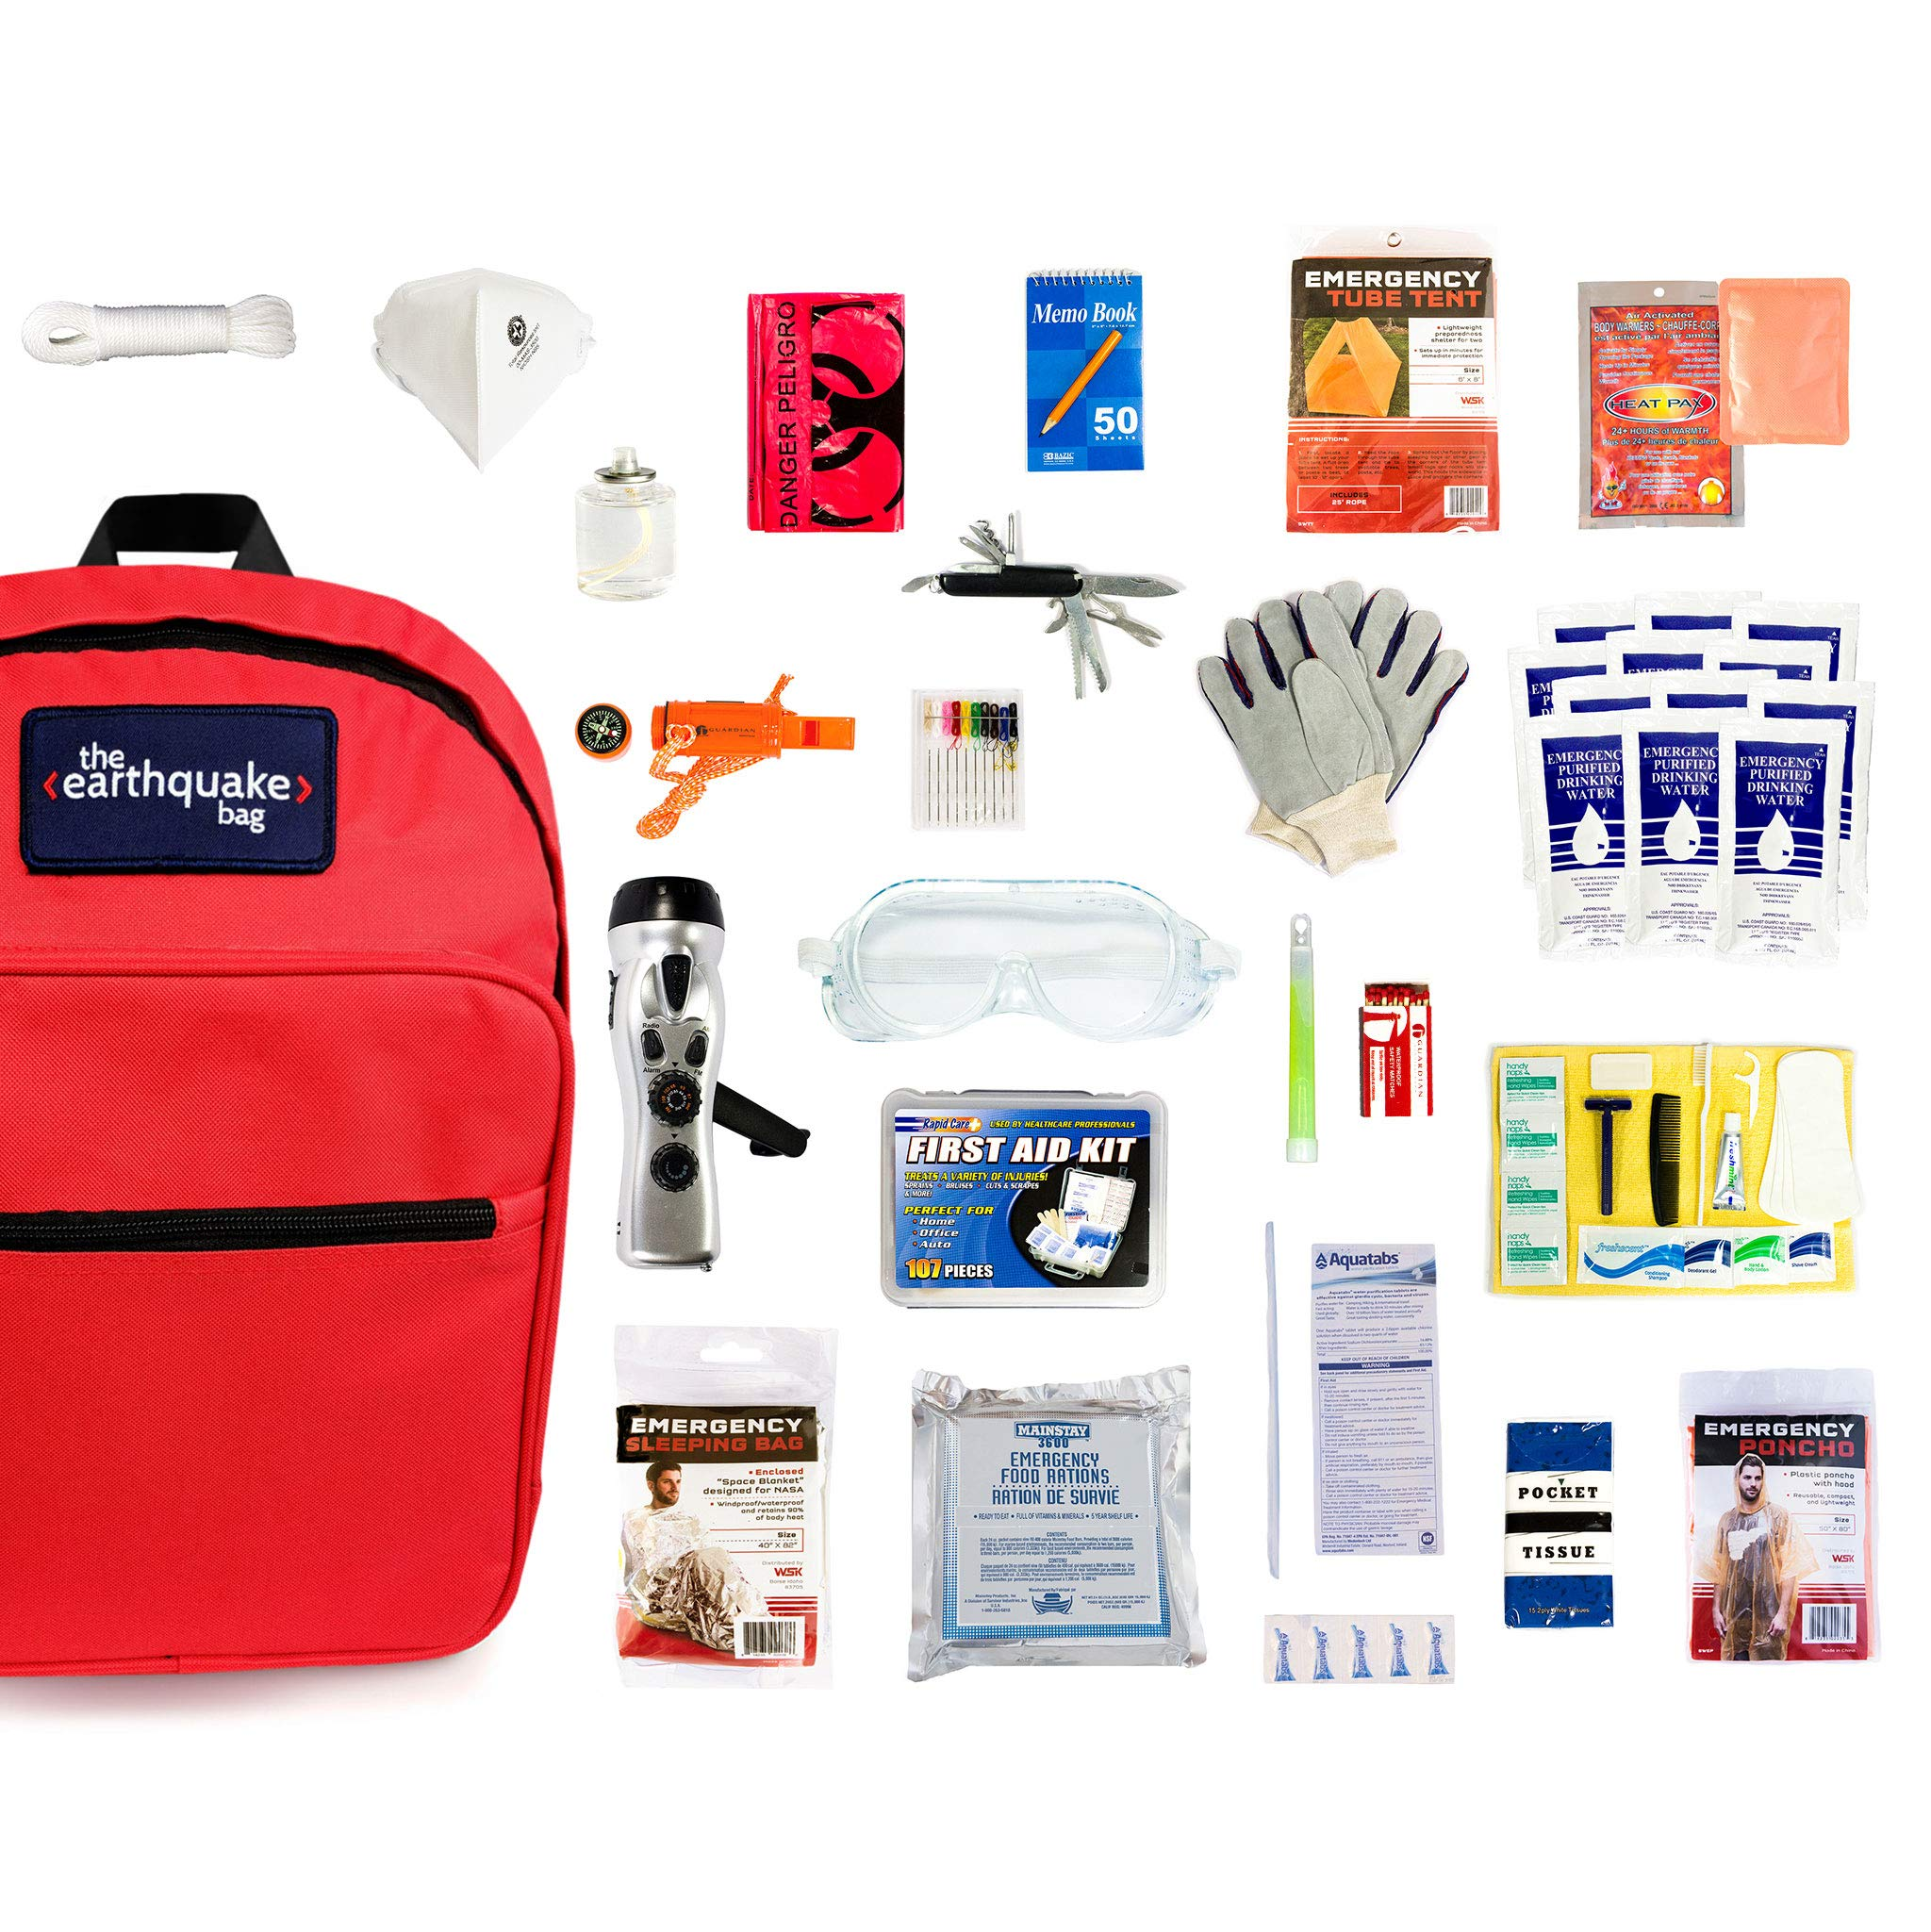 Complete Earthquake Bag - Emergency kit for earthquakes, hurricanes, floods + other disasters (1 person, 3 days) by Redfora